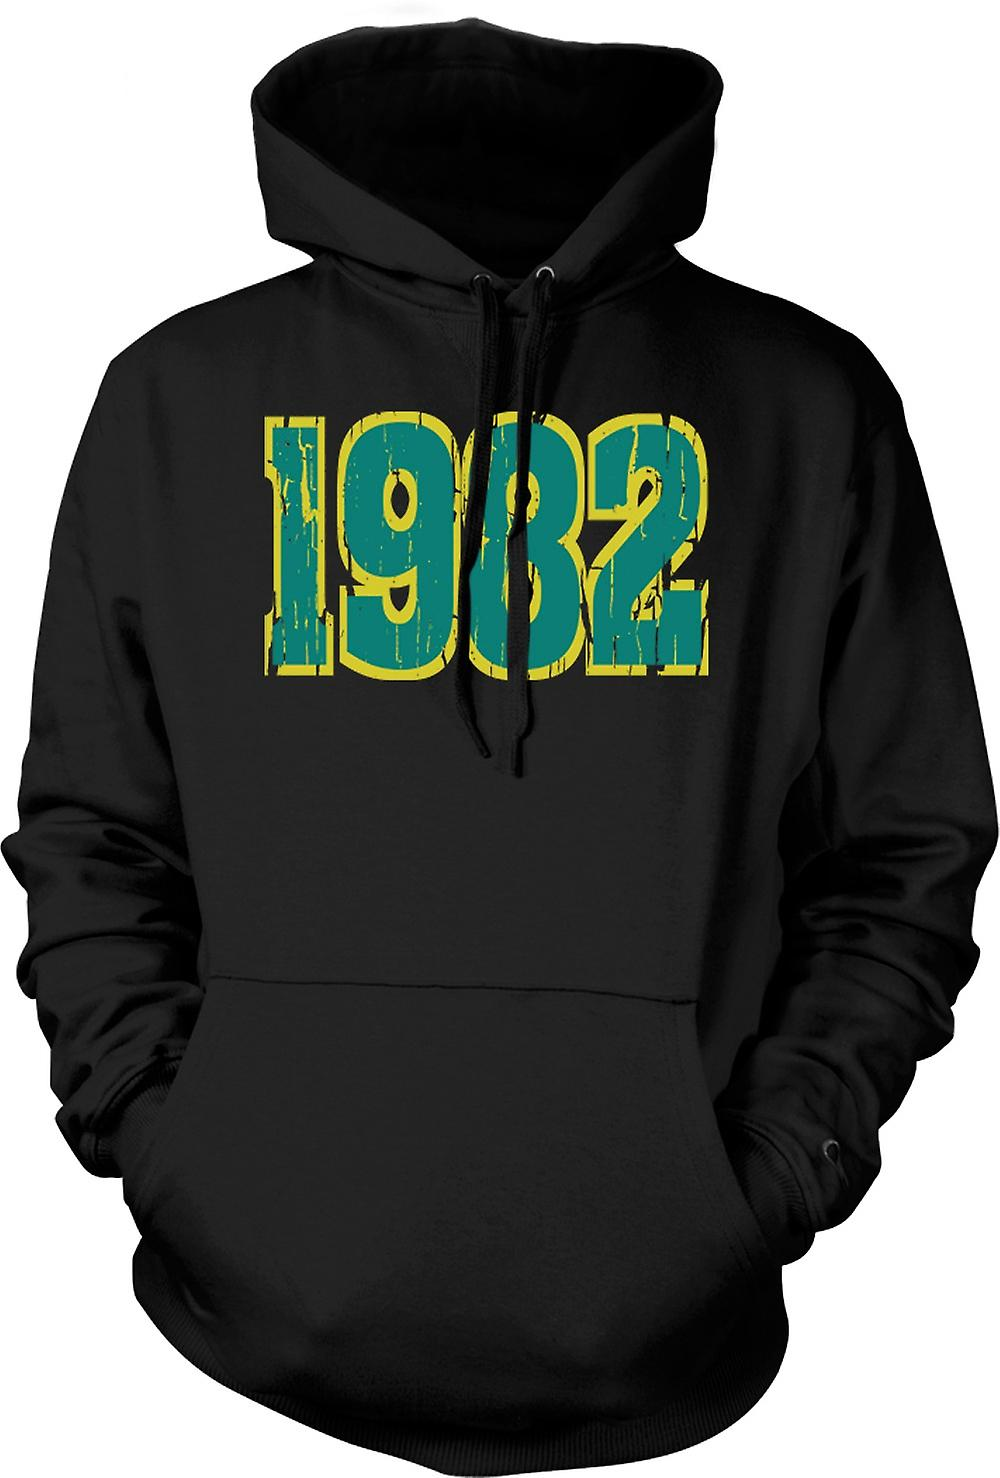 Mens Hoodie - 1982 - Quote